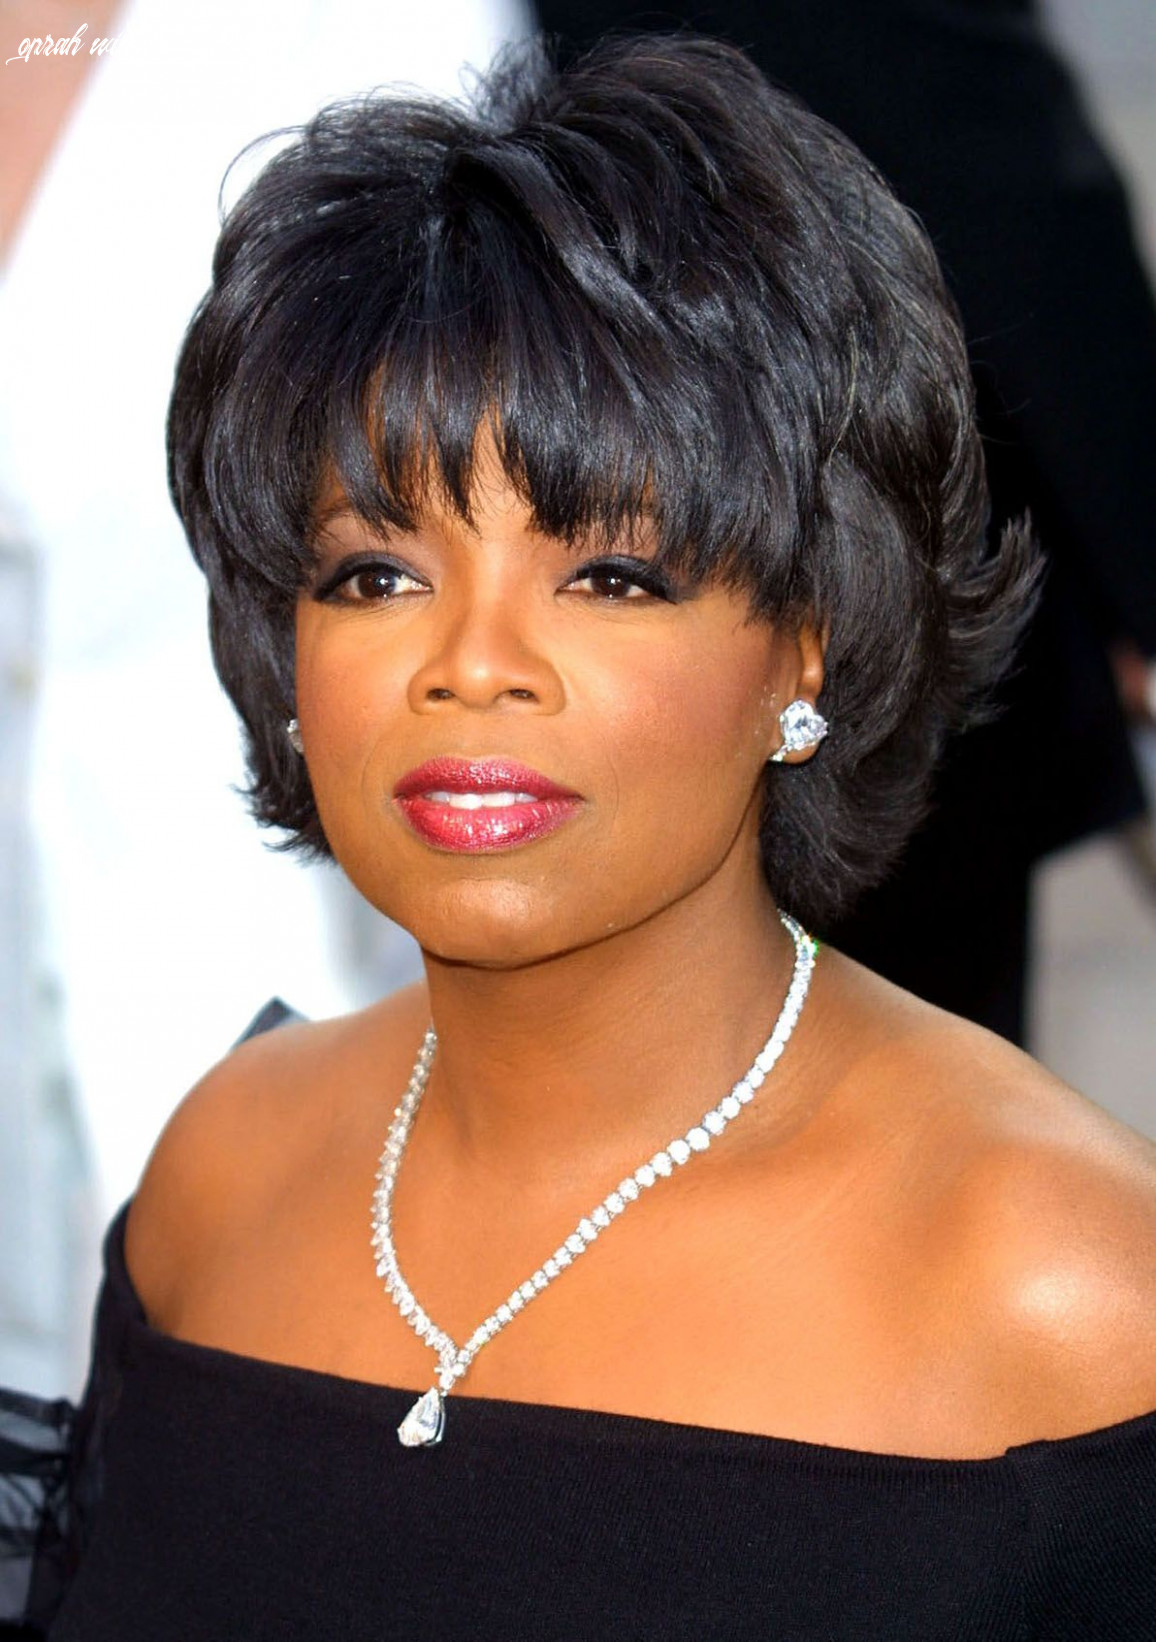 Farewell to oprah and to hairstyles of the past | top hairstyles